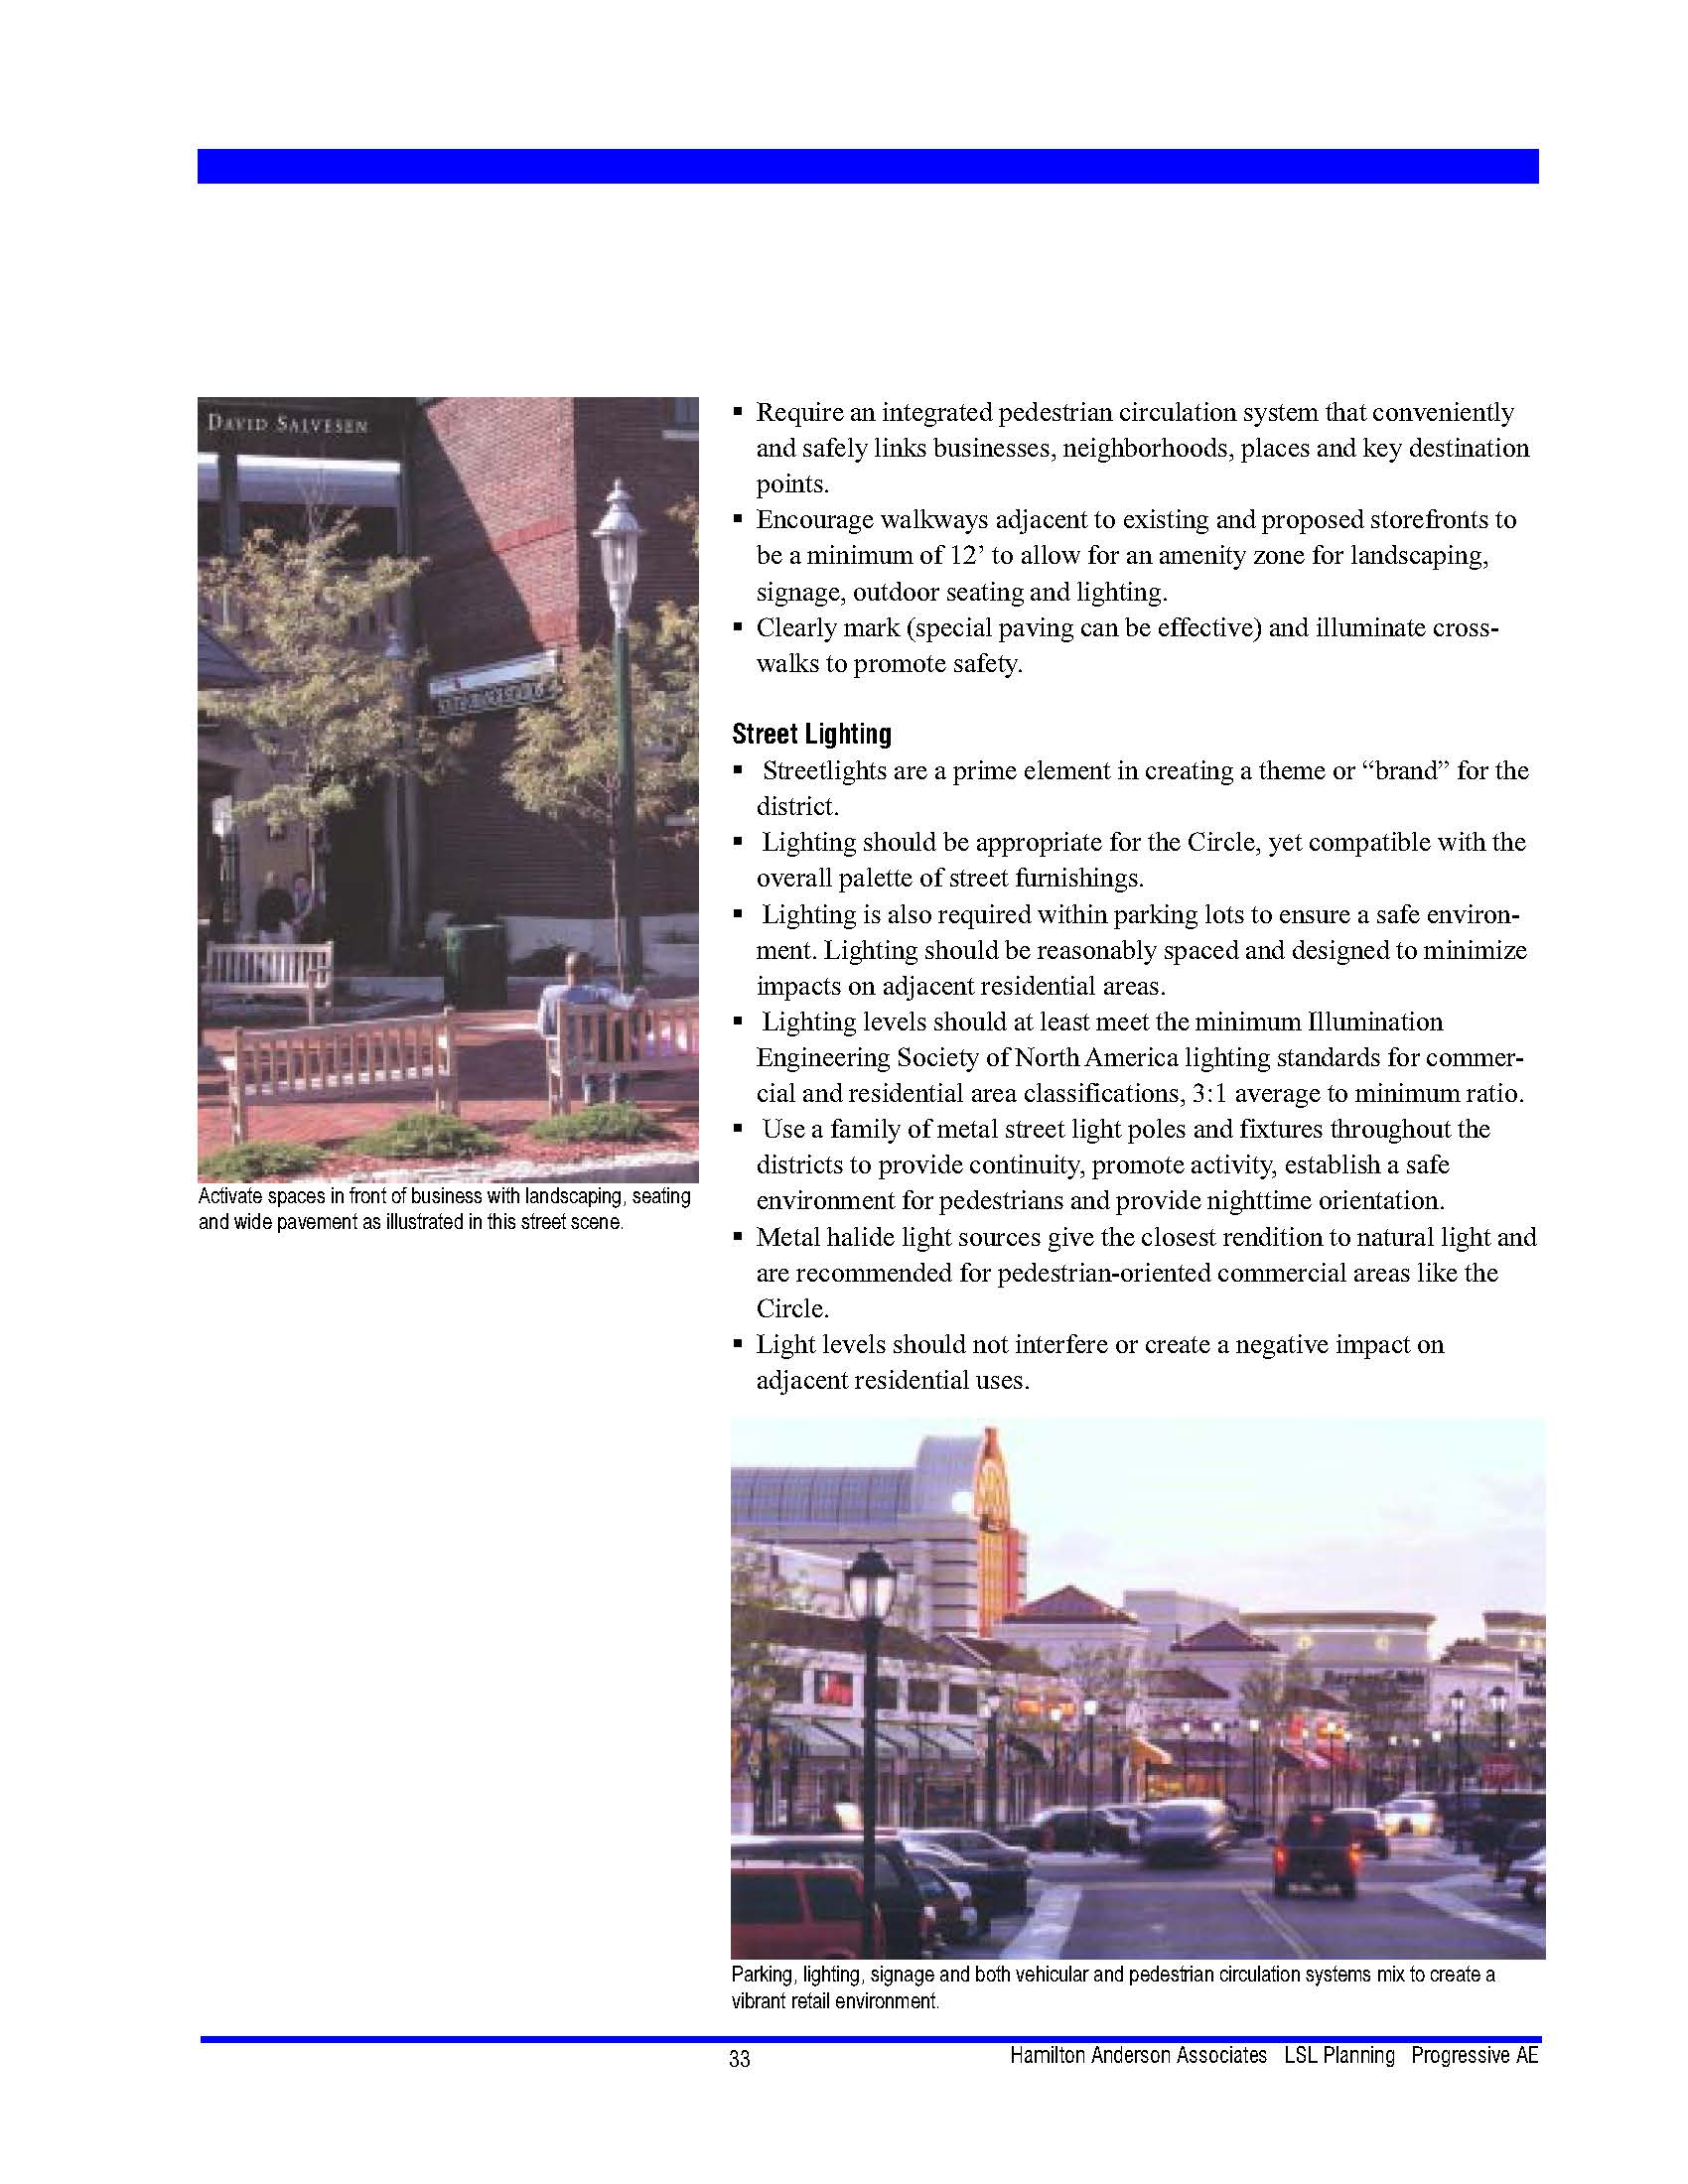 Ashman Circle Enhancement Plan_Page_35.jpg